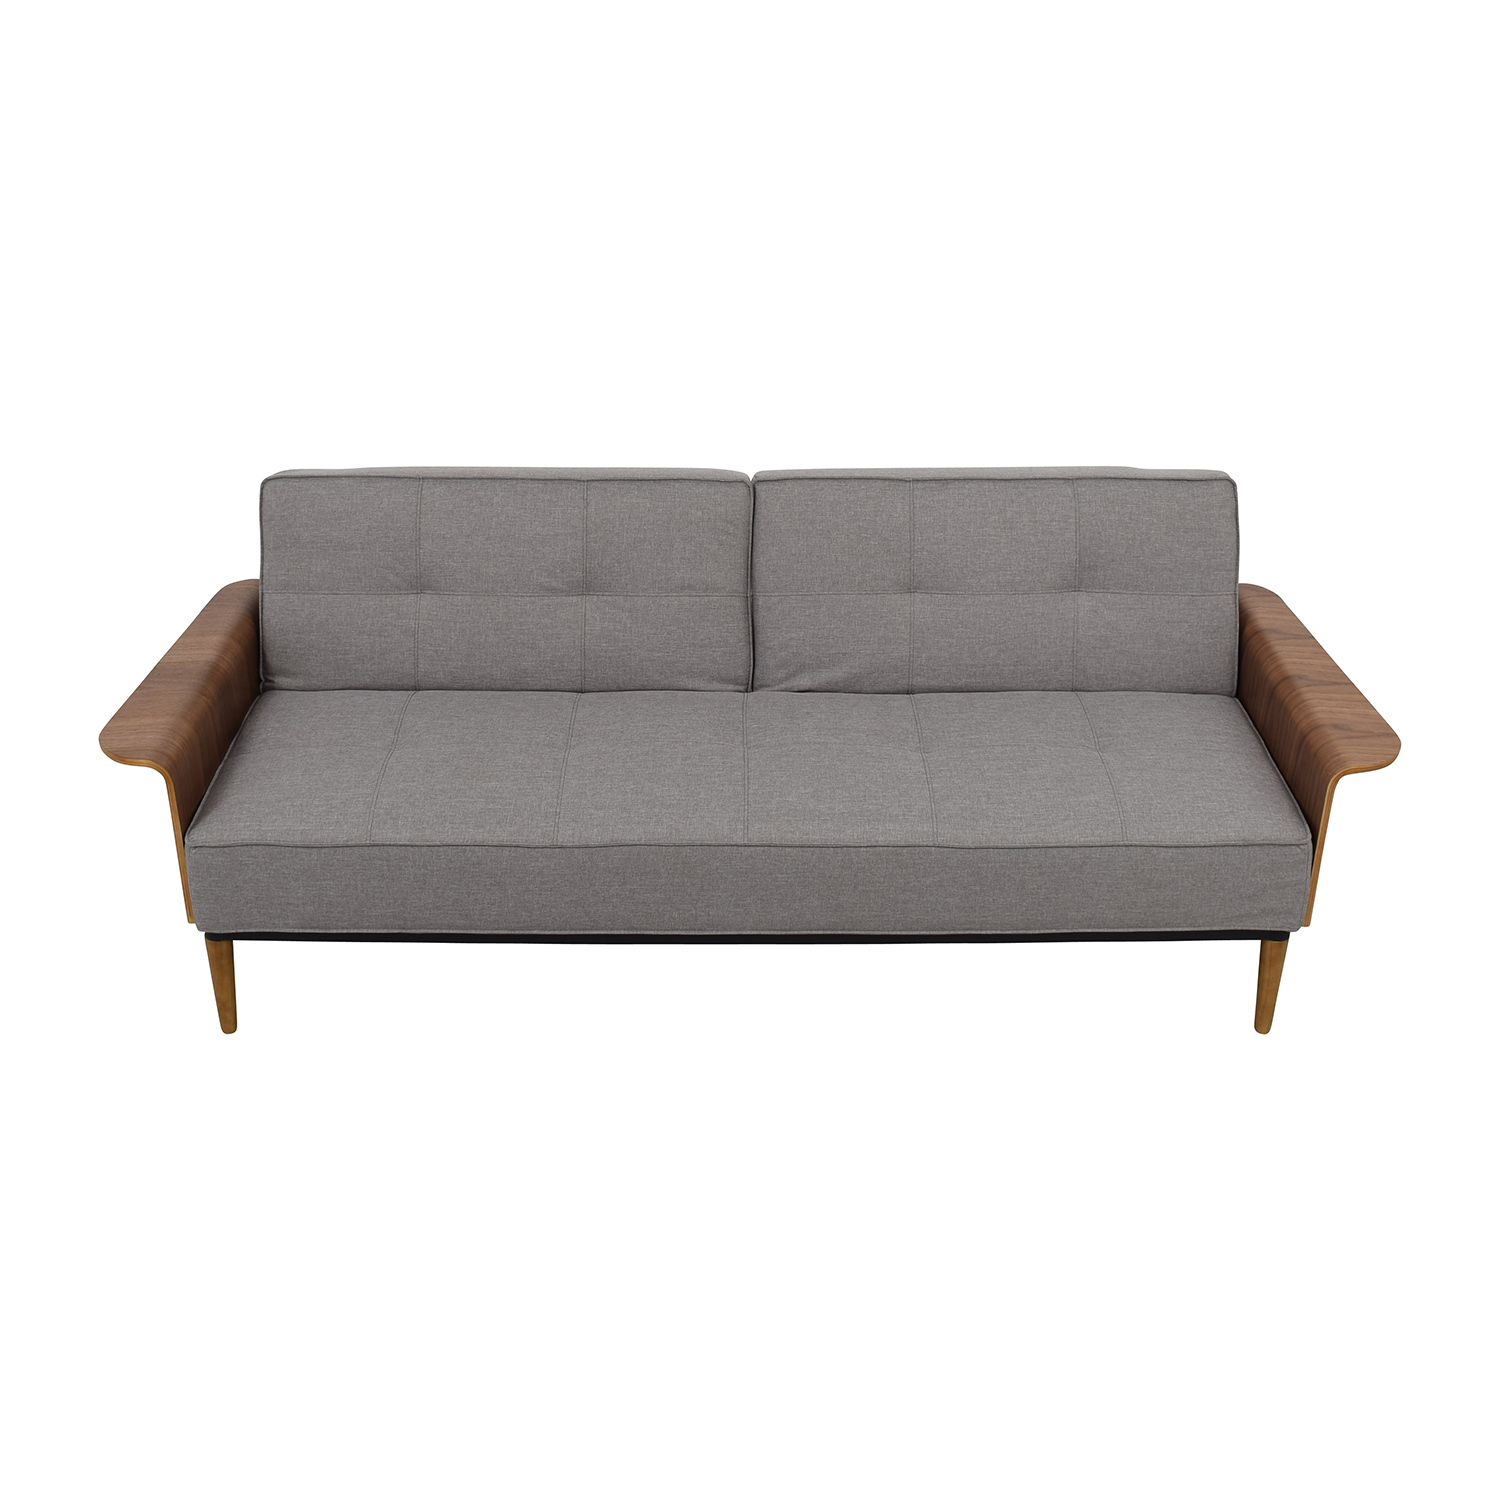 Inmod Inmod Bjorg Tufted Light Grey Sofabed nj